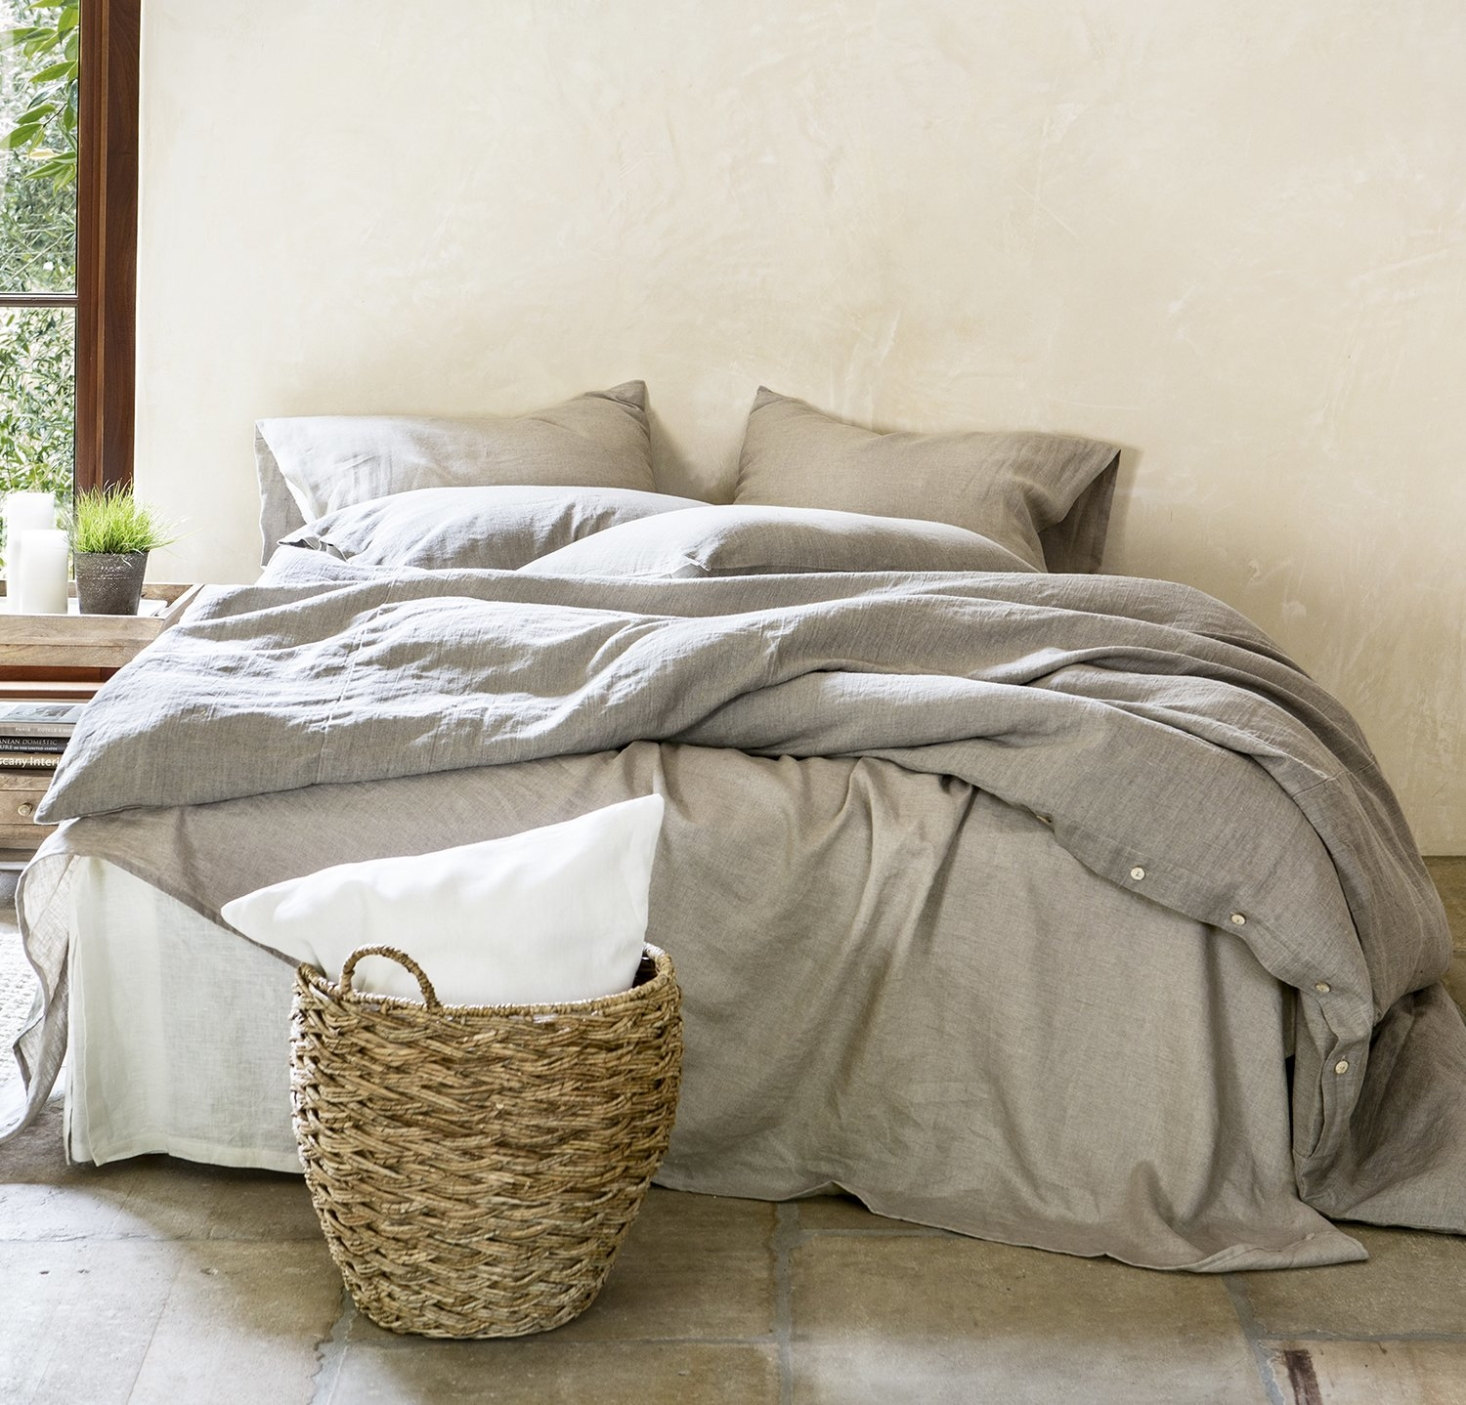 The Remodelista Guide to Black Friday and Cyber Monday